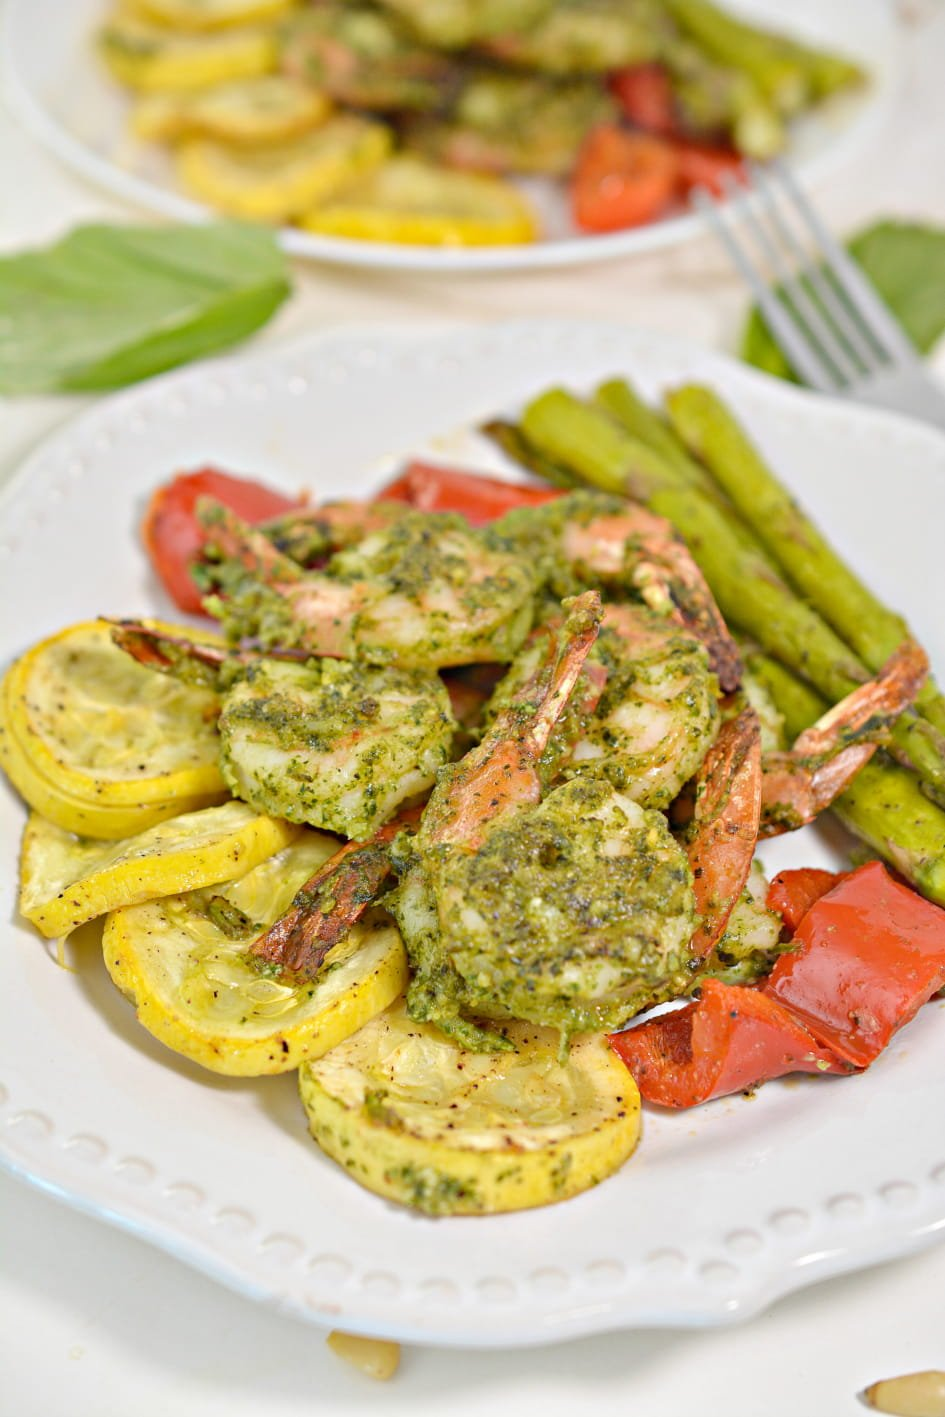 Pesto Keto Shrimp Sheet Pan final plating ready to serve guests